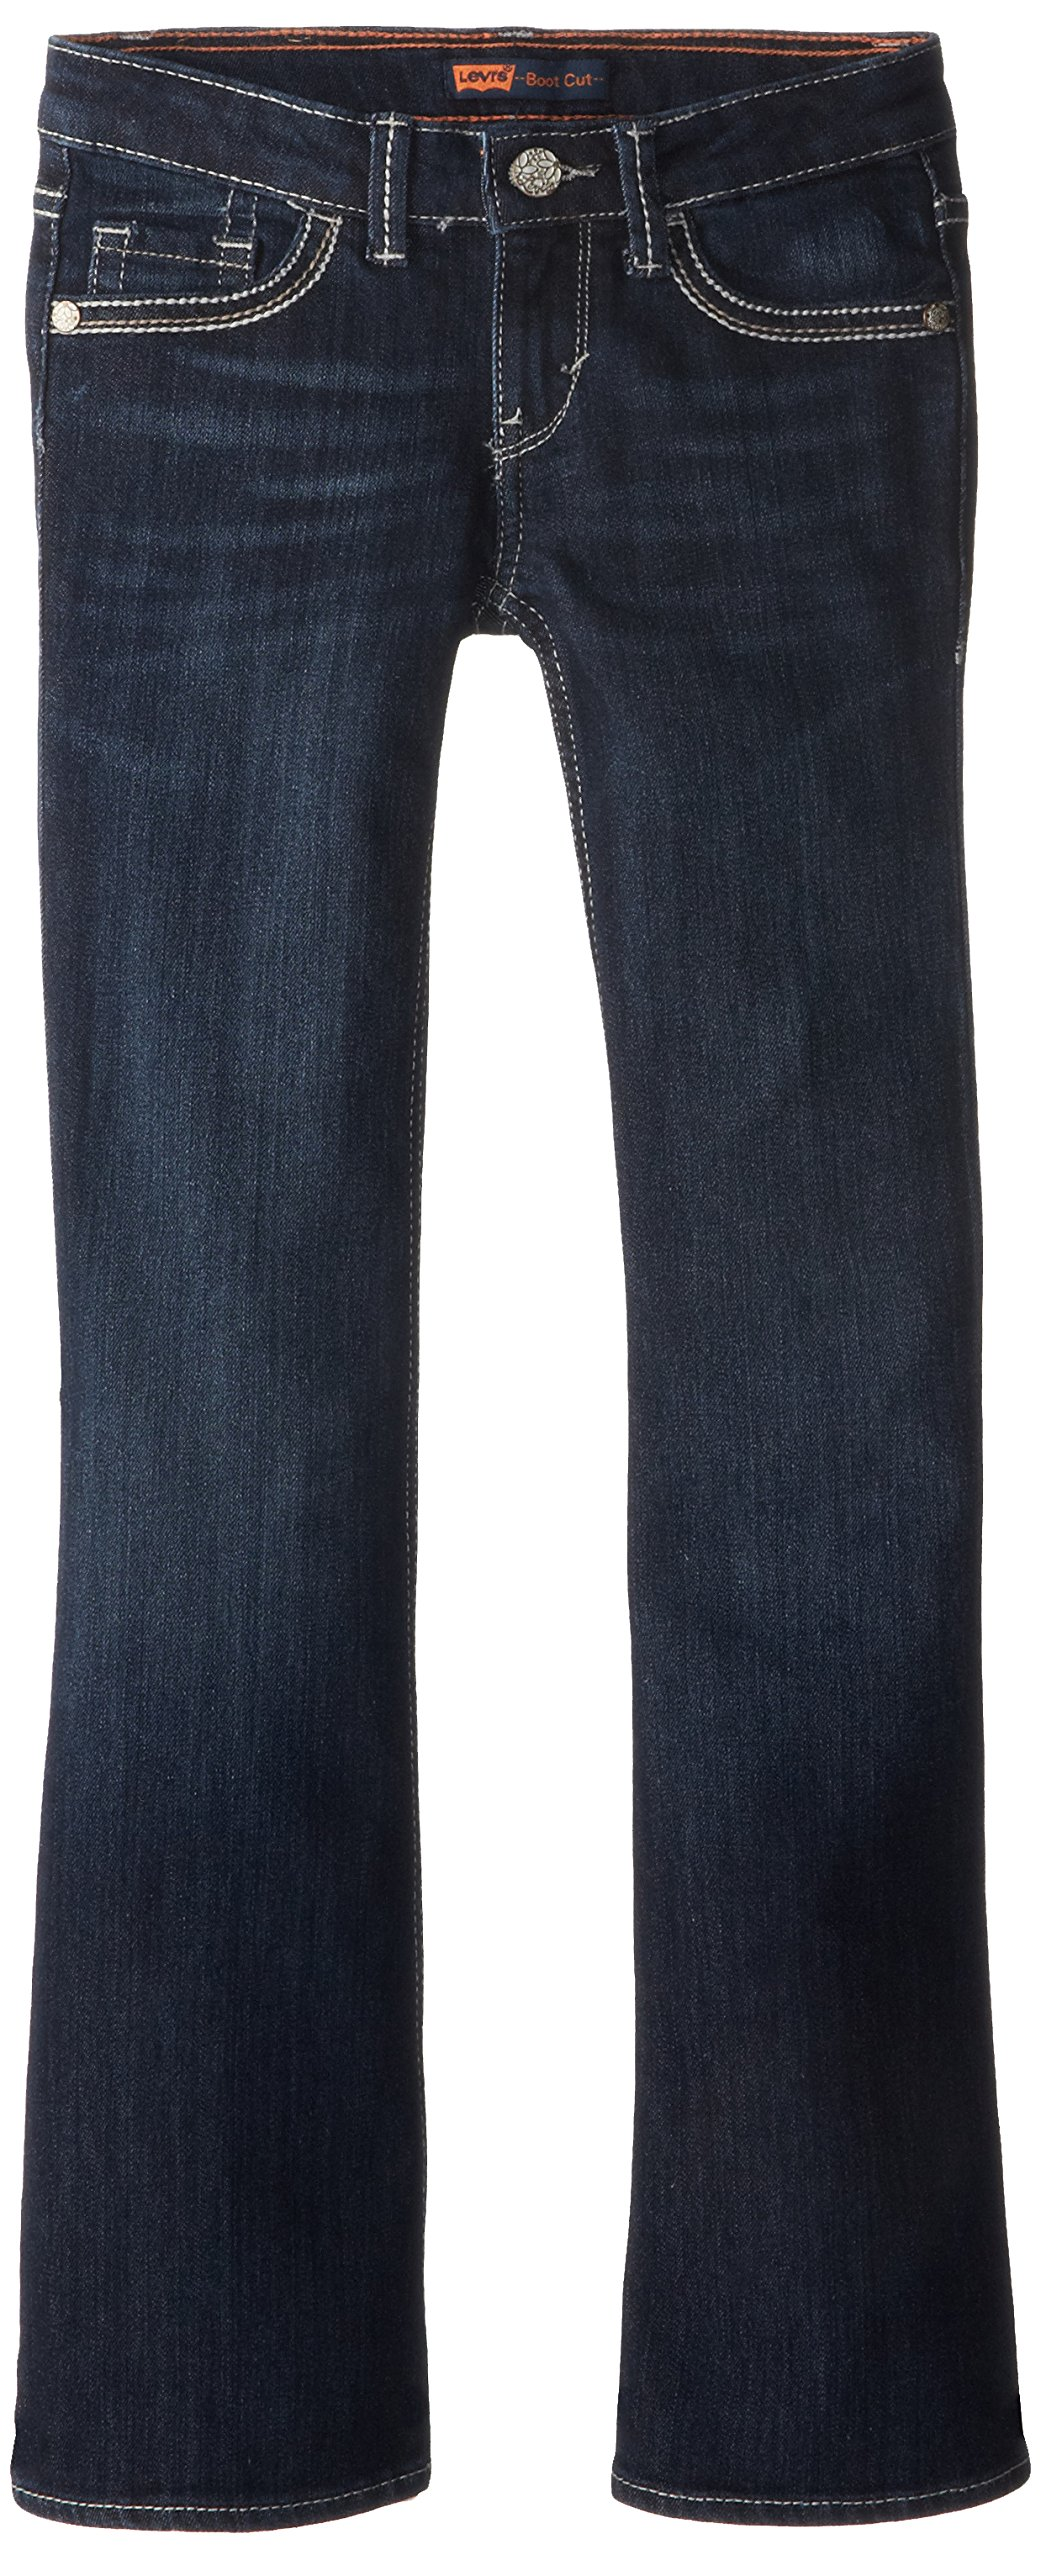 Levi's Girls' Big 715 Bootcut Thick Stitch Jeans, Tailored Indigo, 14 by Levi's